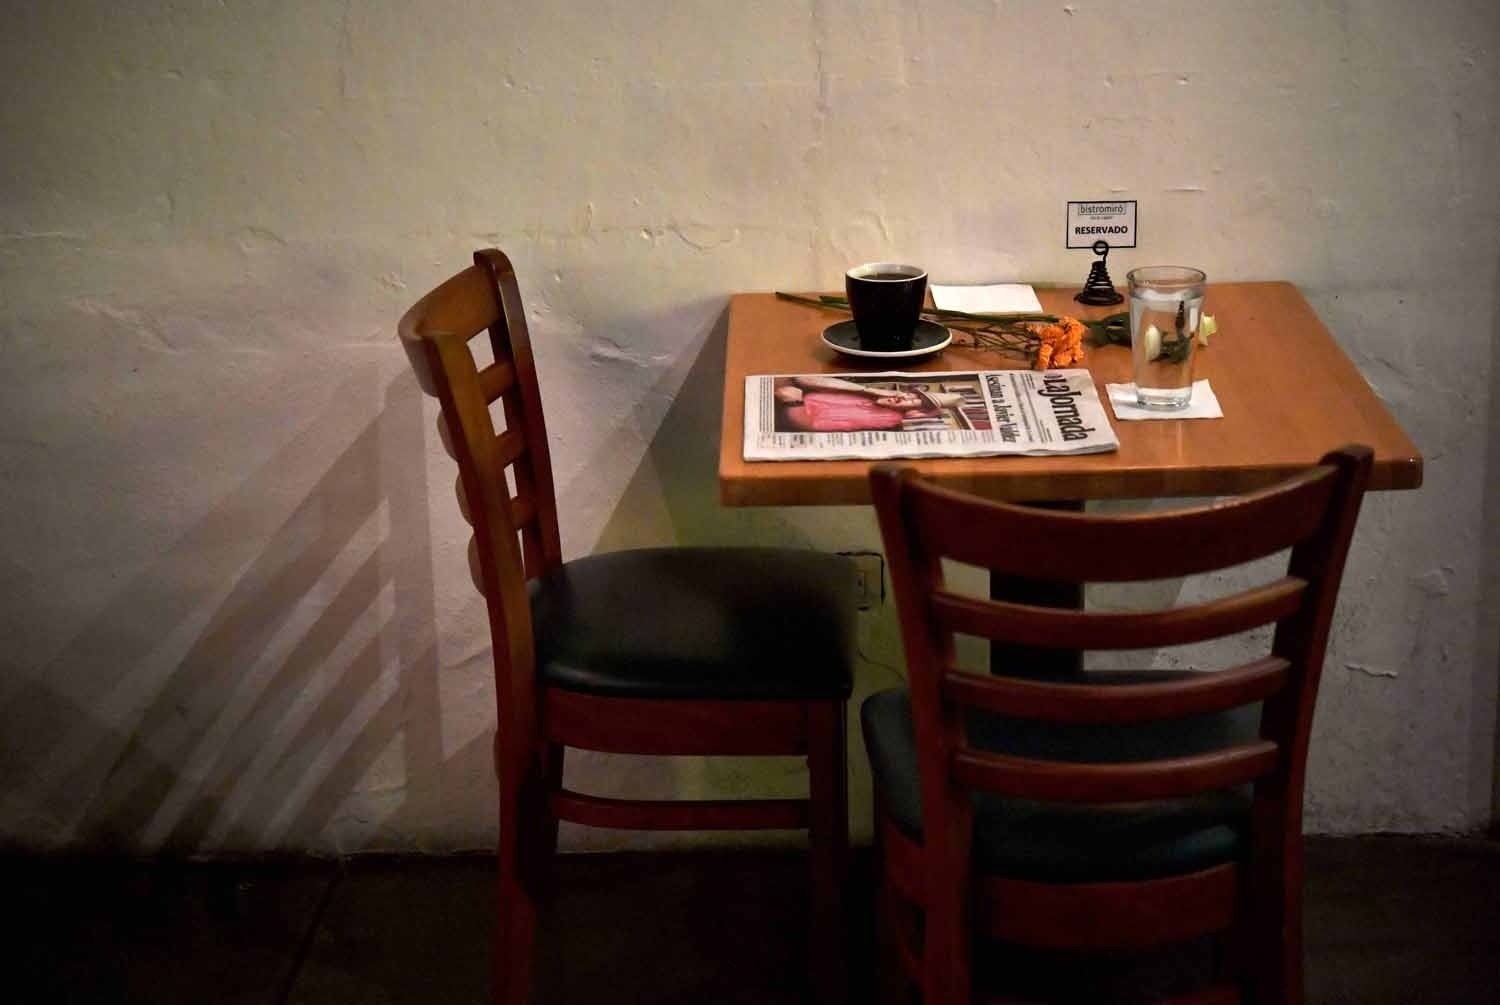 A makeshift altar with a cup of coffee, water glass and newspaper headlining the story of slain Mexican journalist Javier Valdez is pictured in a cafe previously frequented by Valdez in Culiacan, Sinaloa State, Mexico on May 16, 2017.